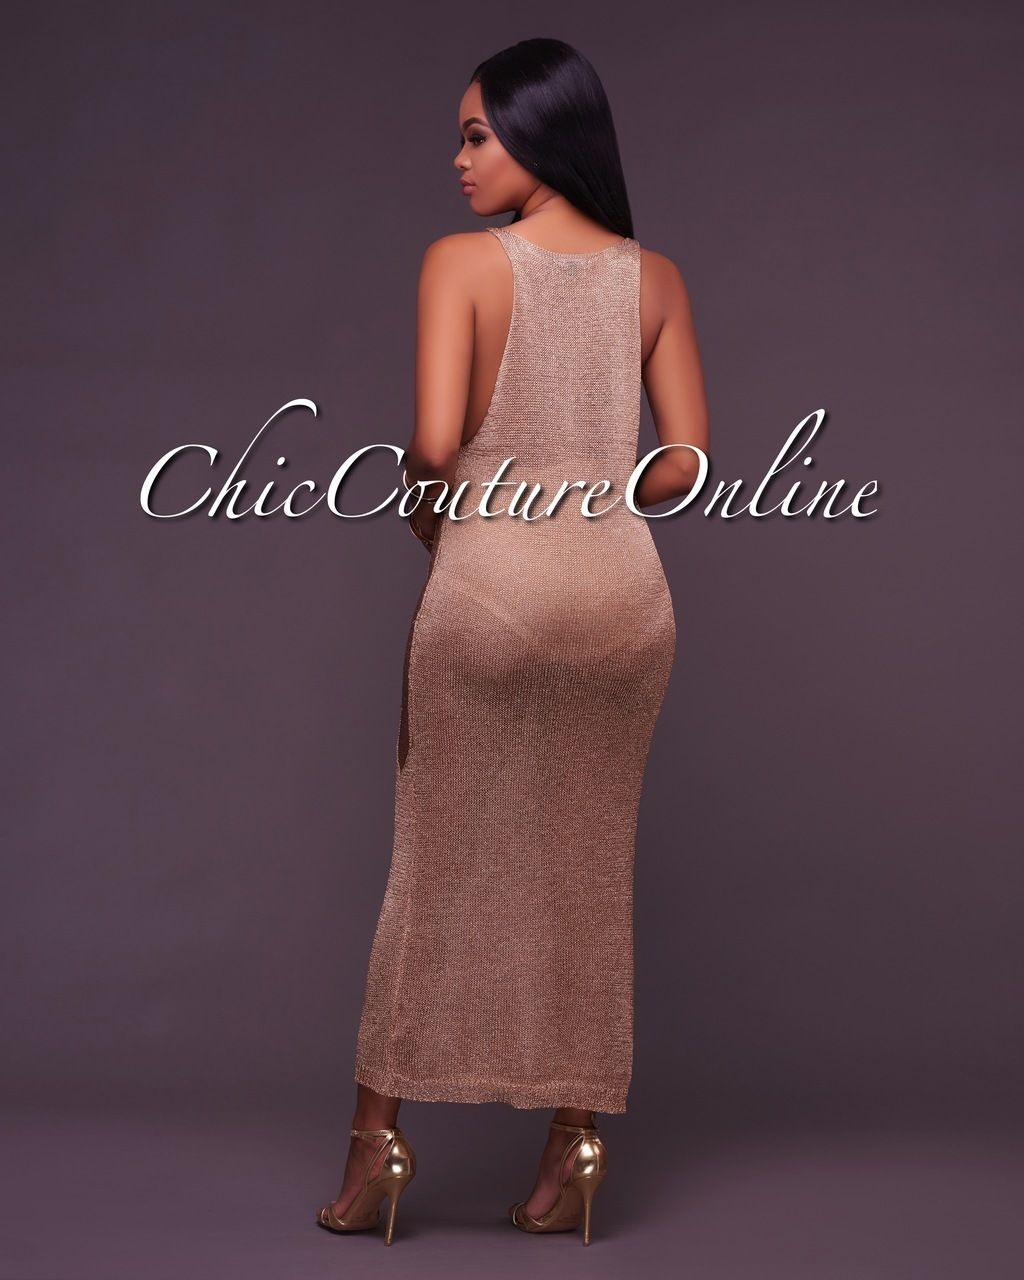 563a3ed39a9 Chic Couture Online - Della Metallic Gold Crochet Cover-Up Dress, (http: